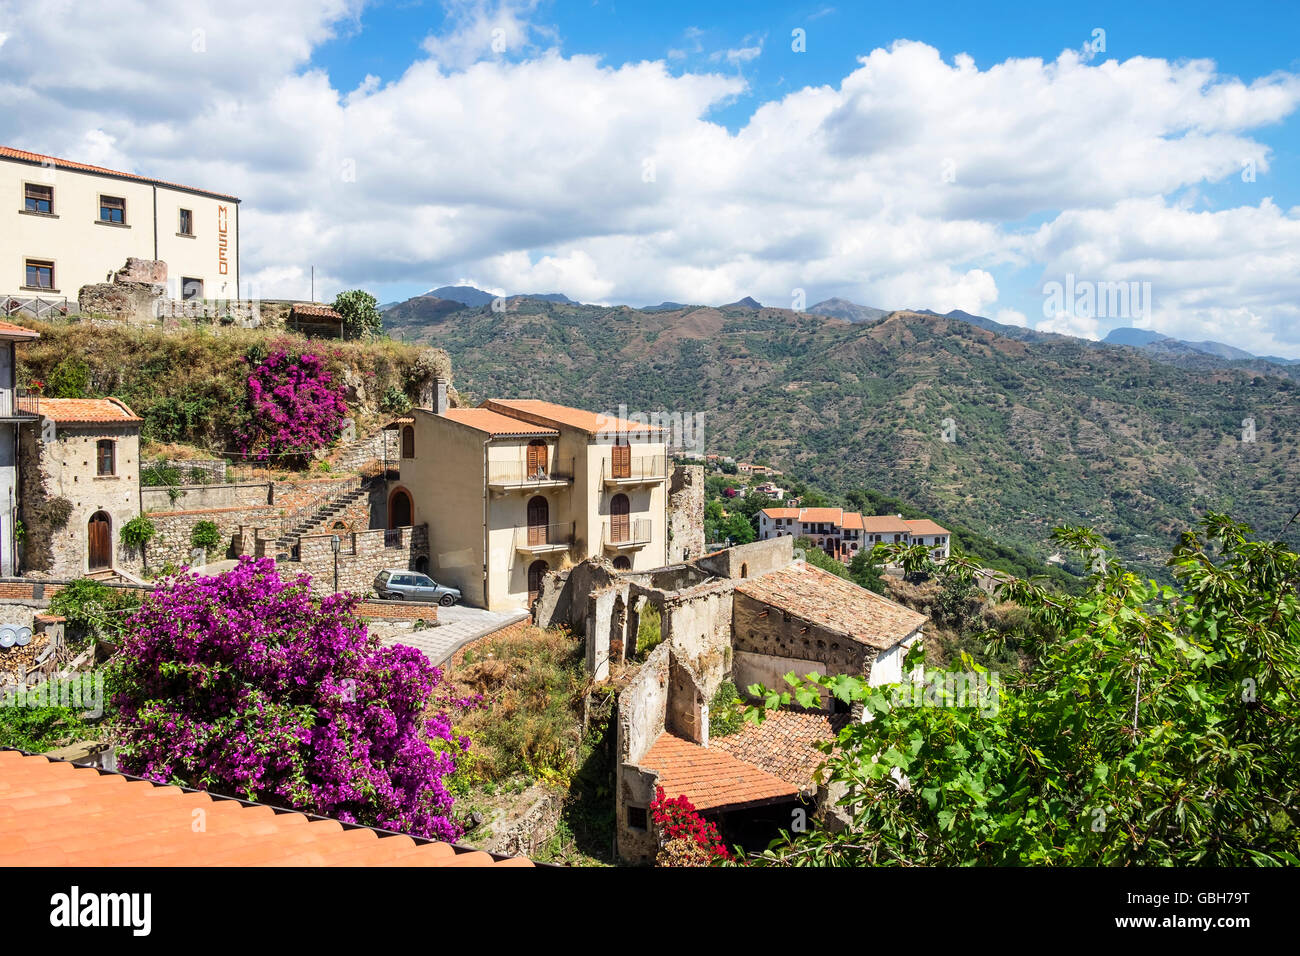 The medieval village of Savoca in the Peloritani Mountains near Messina on the Italian island of Sicily - Stock Image